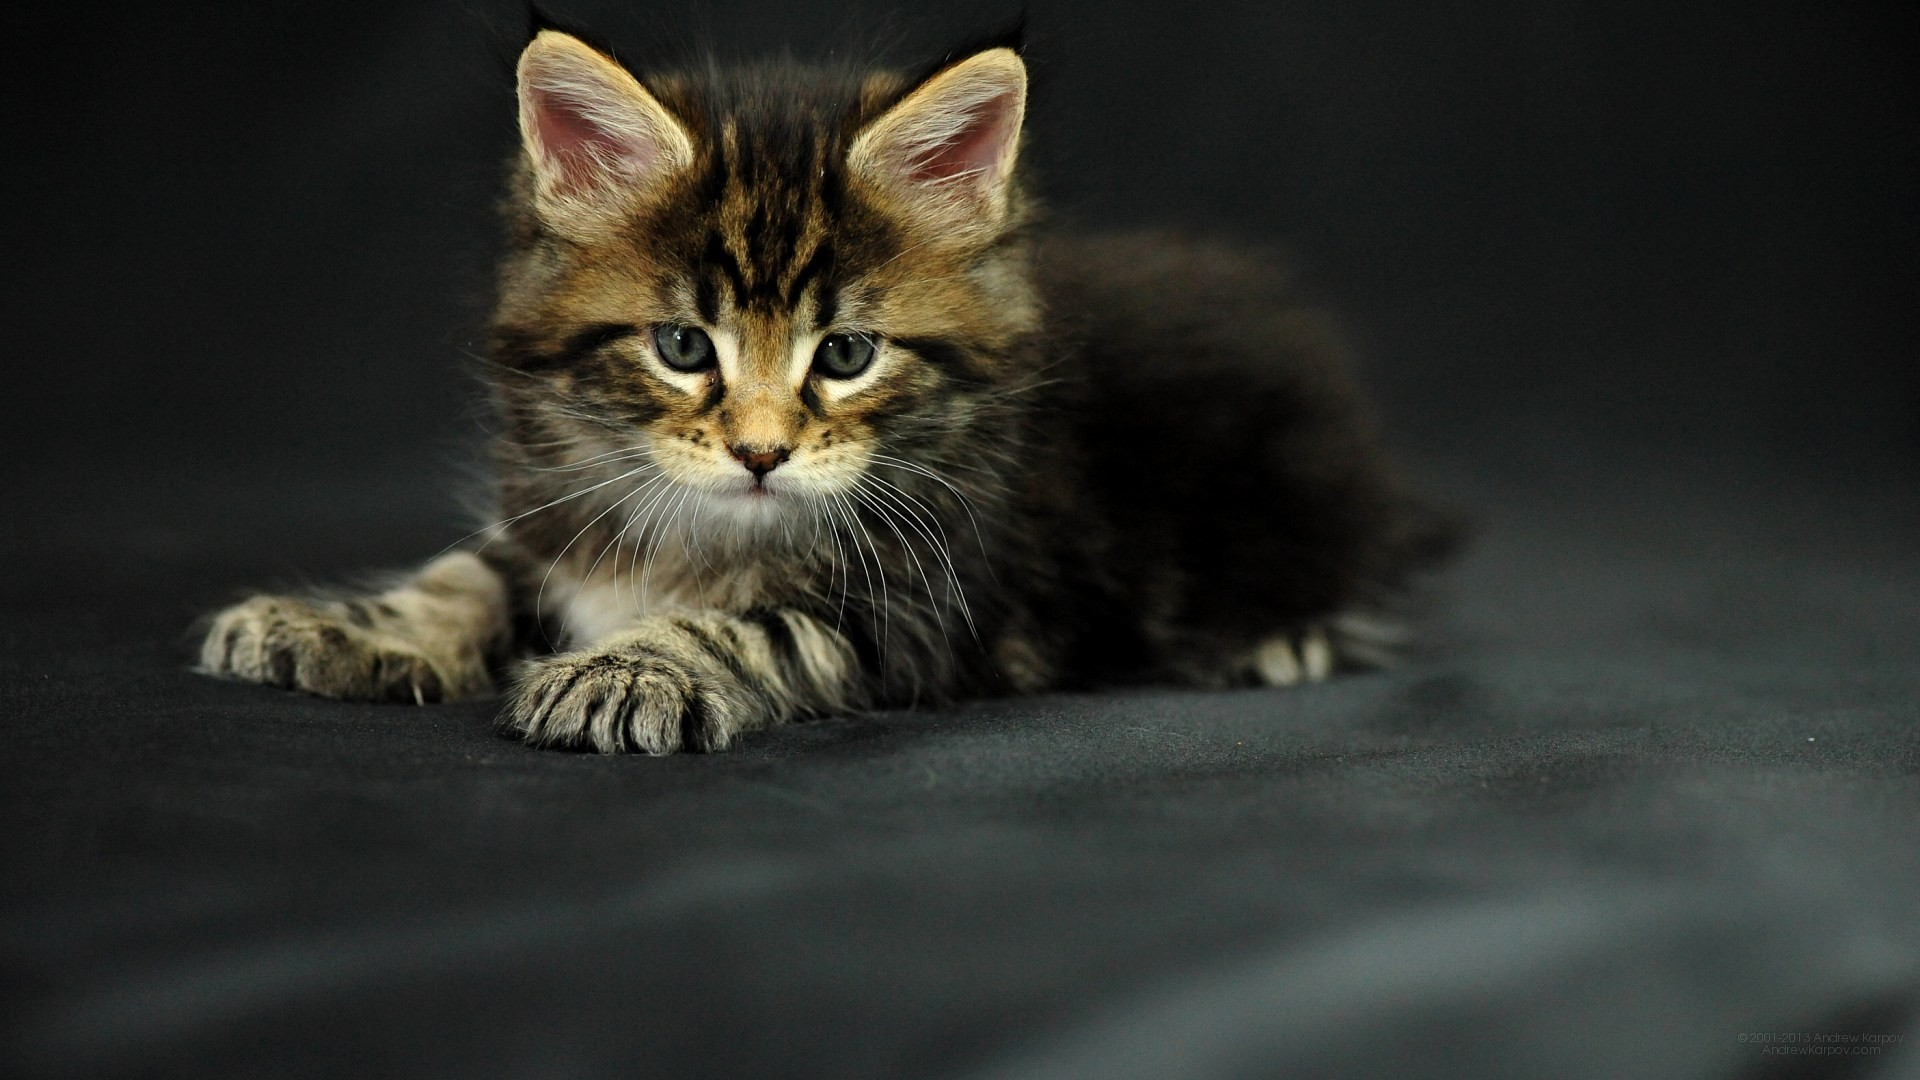 1920x1080 Pictures lolcat Funny Cat desktop wallpaper picture 1920 x 1080 Oracle,  Maine Coon kitten